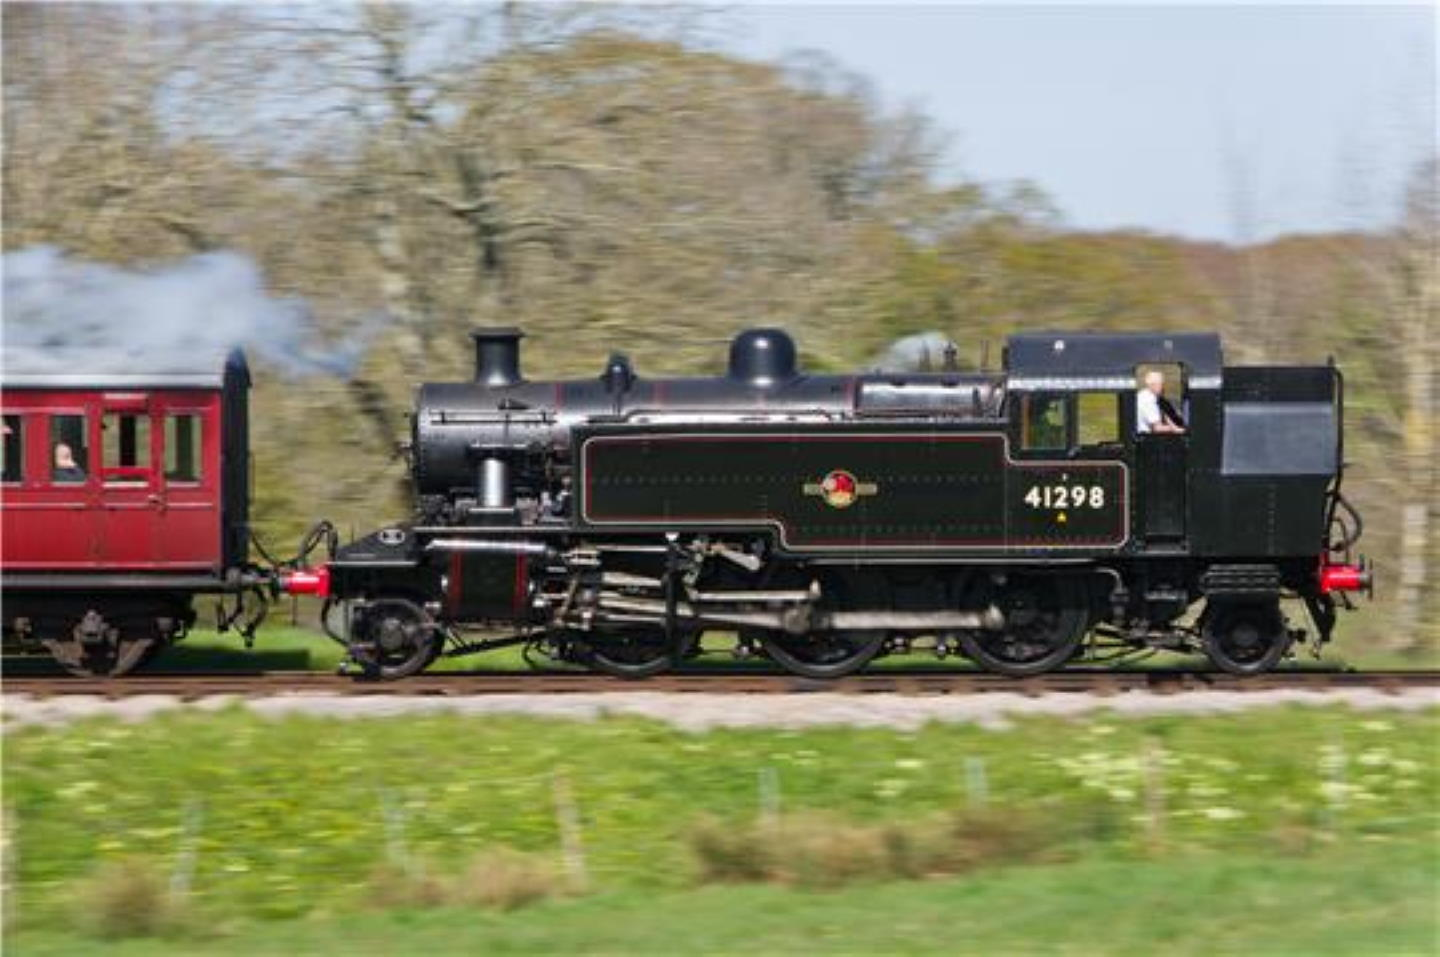 41298 at the Isle of Wight Steam Railway in 2016 // Credit Isle of Wight Steam Railway